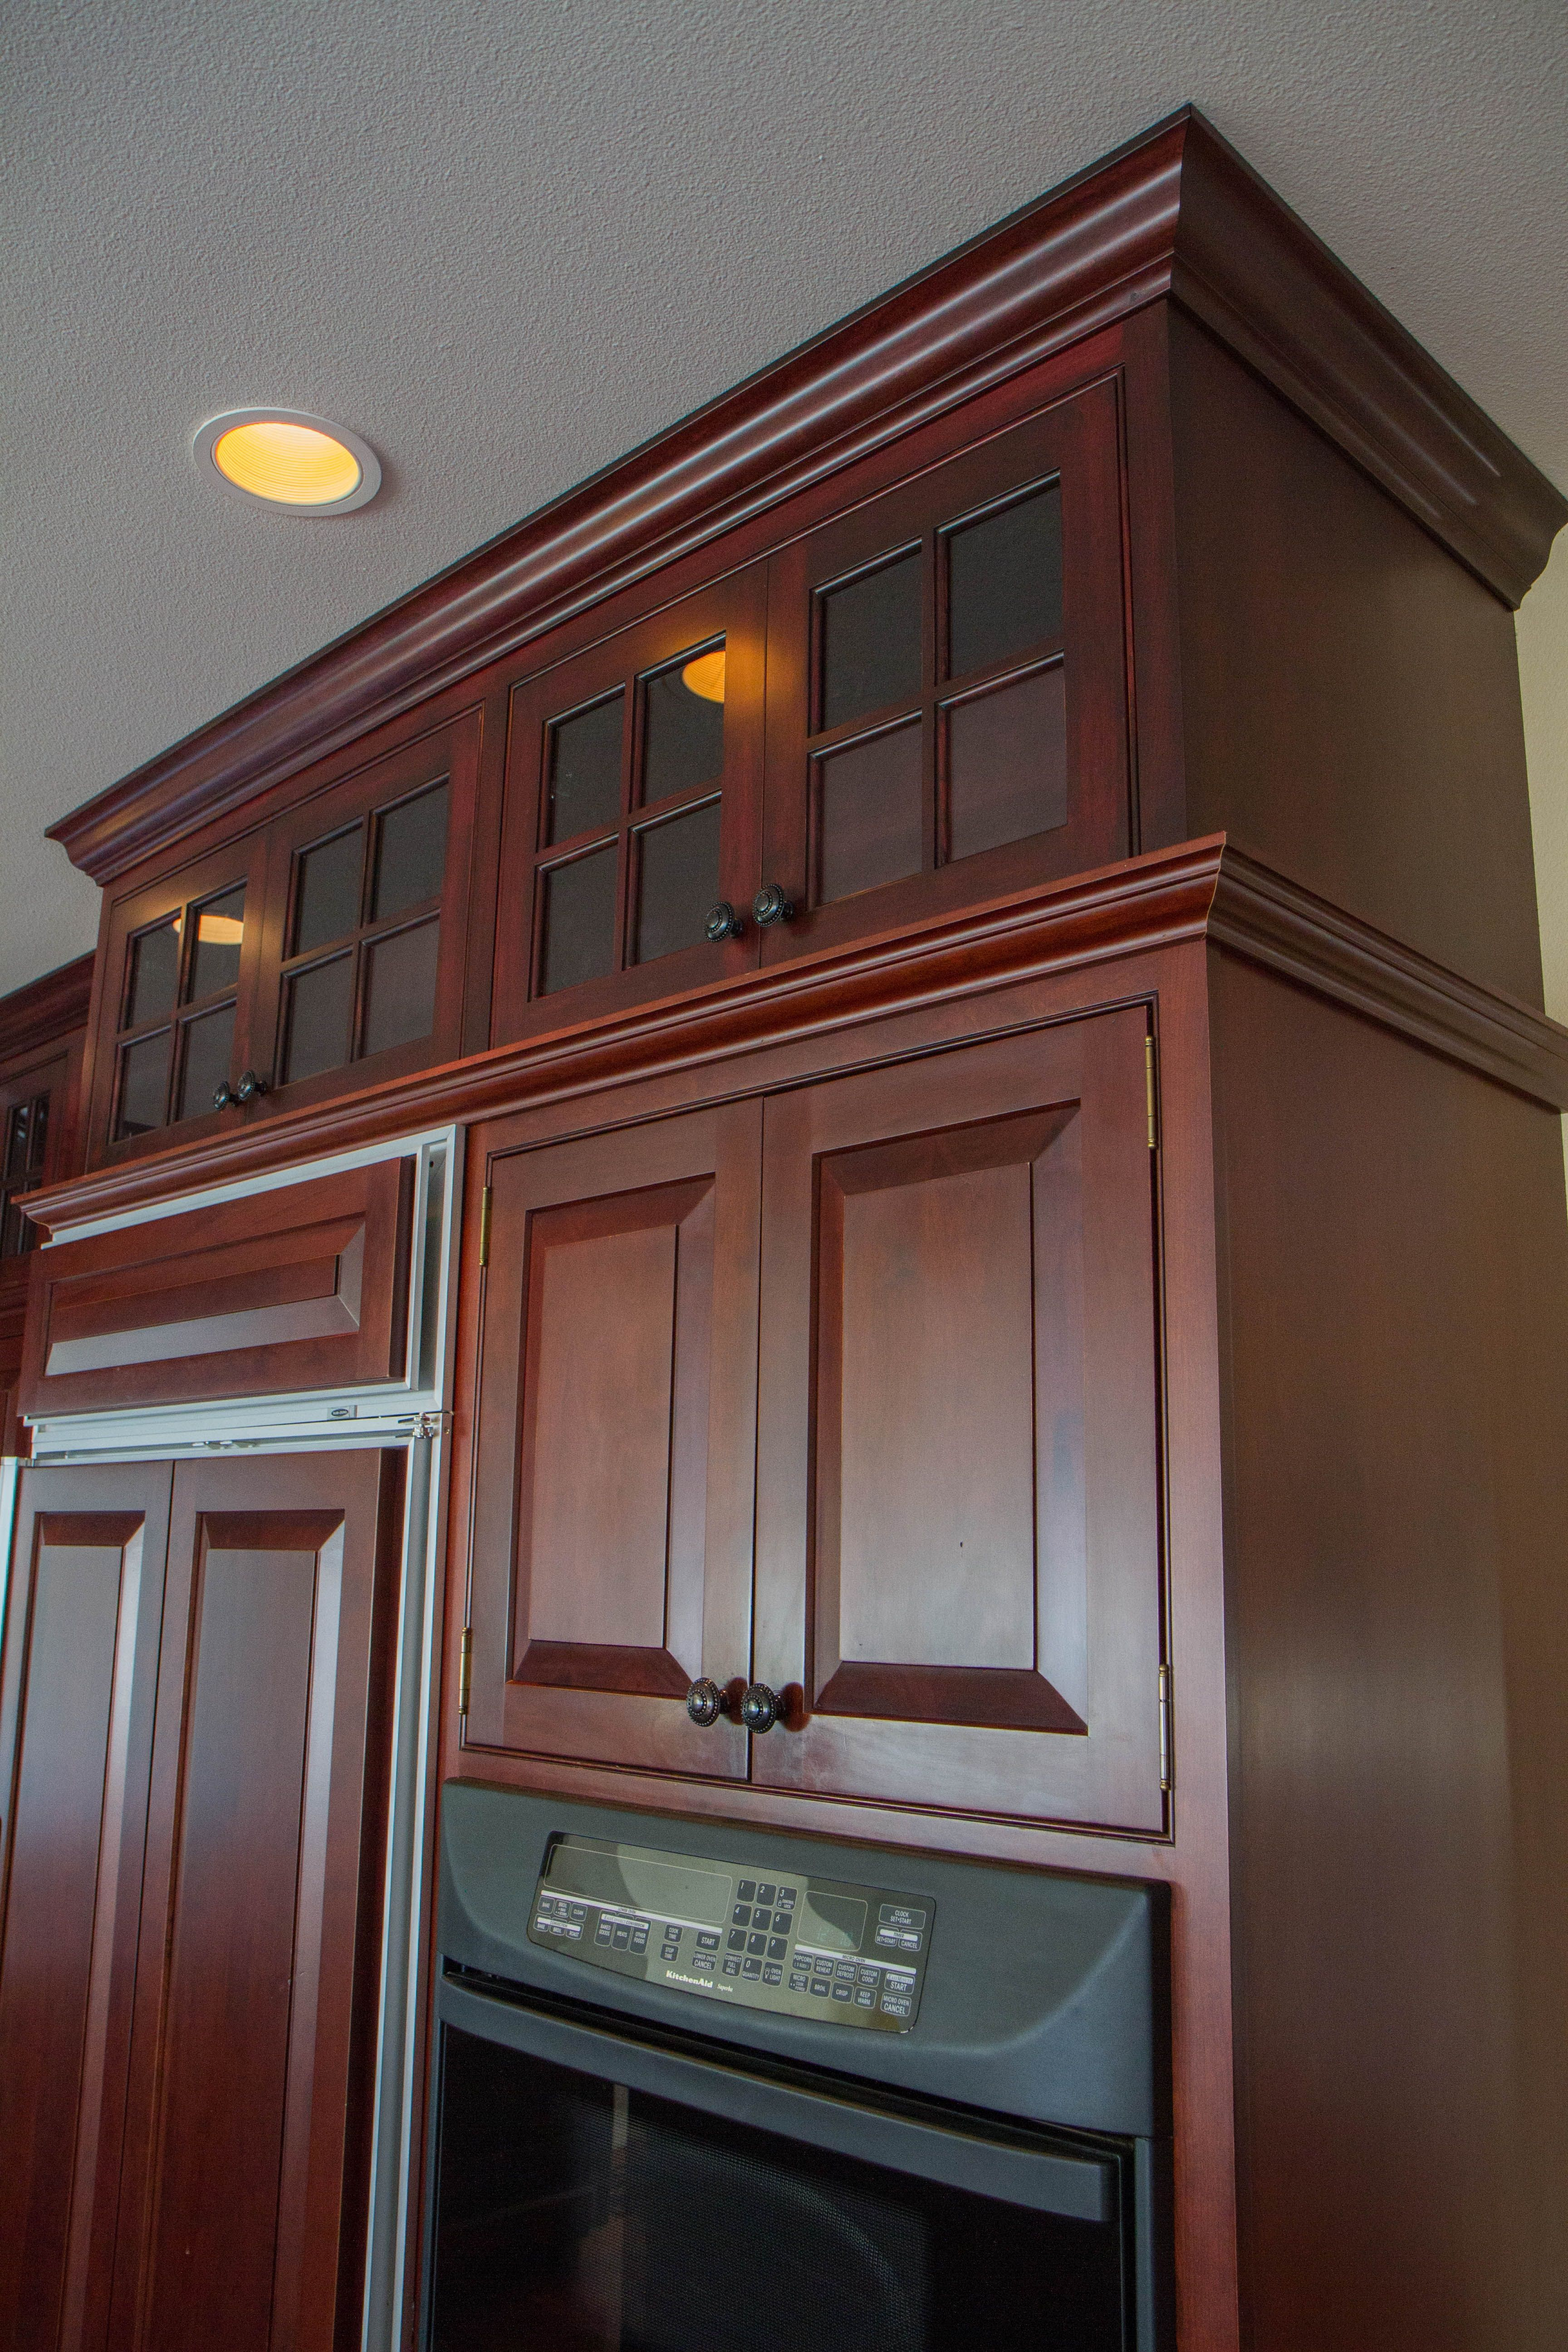 adding drawers to existing kitchen cabinets adding drawers to existing kitchen cabinets   kitchen cabinets      rh   pinterest com